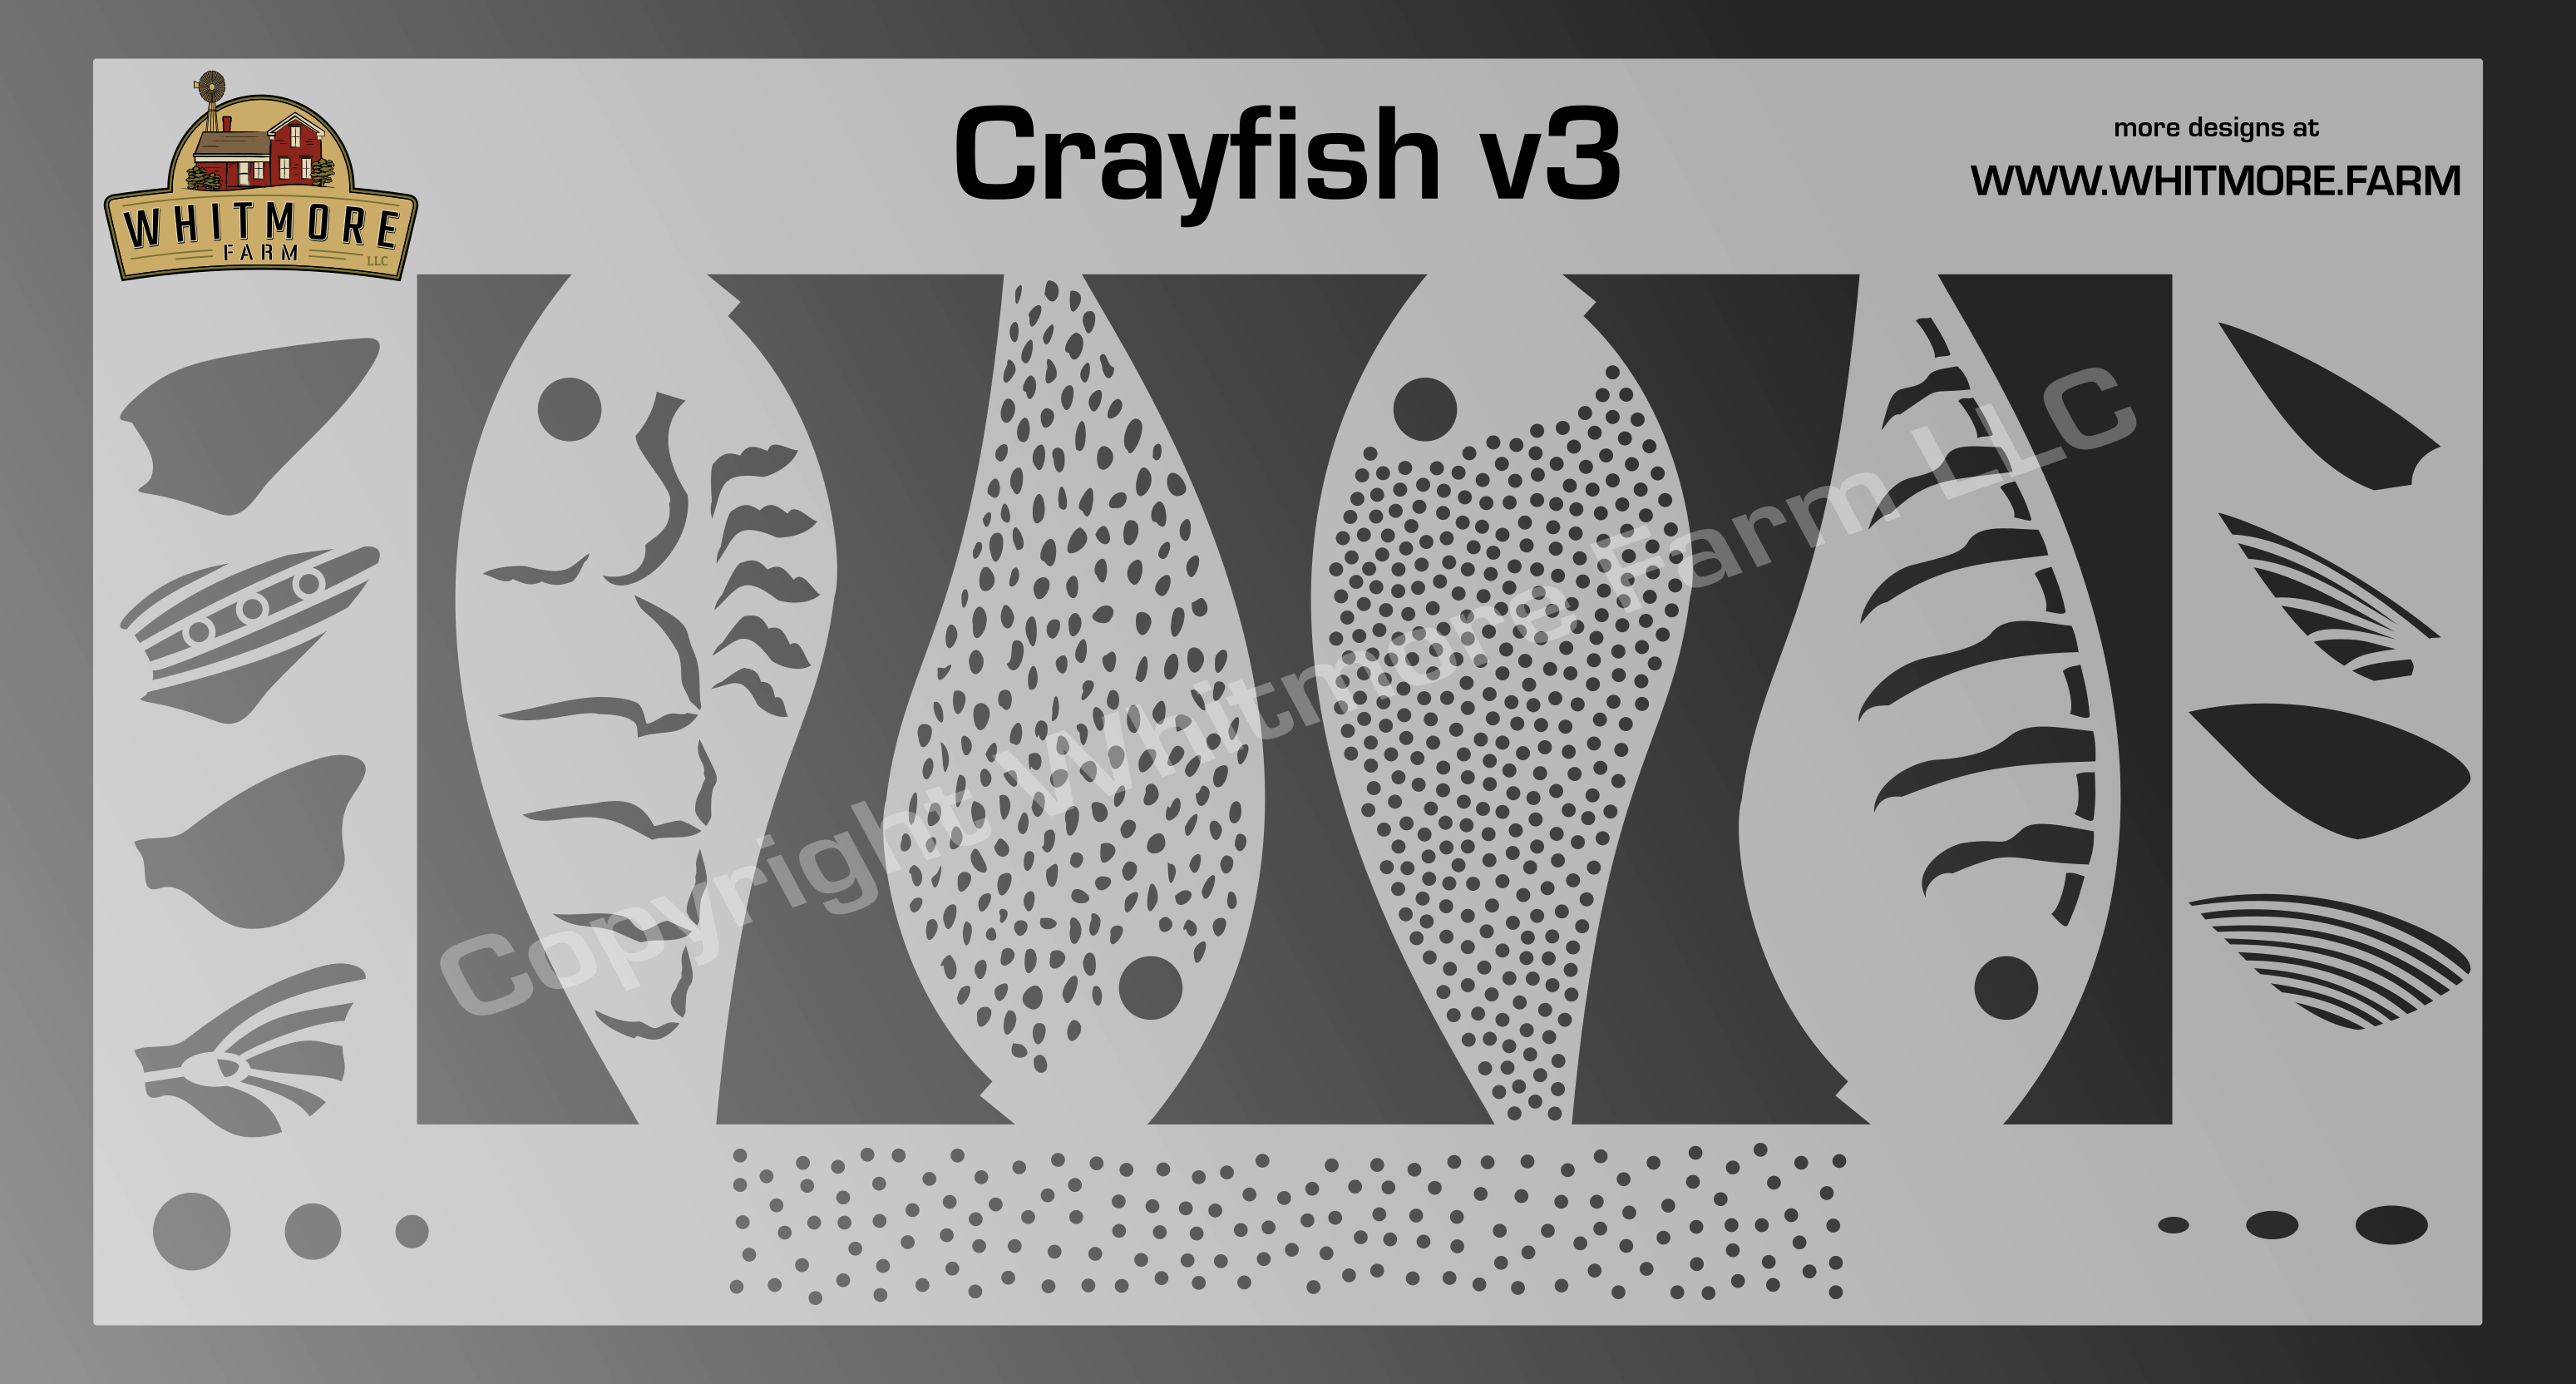 Crayfish v3 fishing lure airbrush stencil